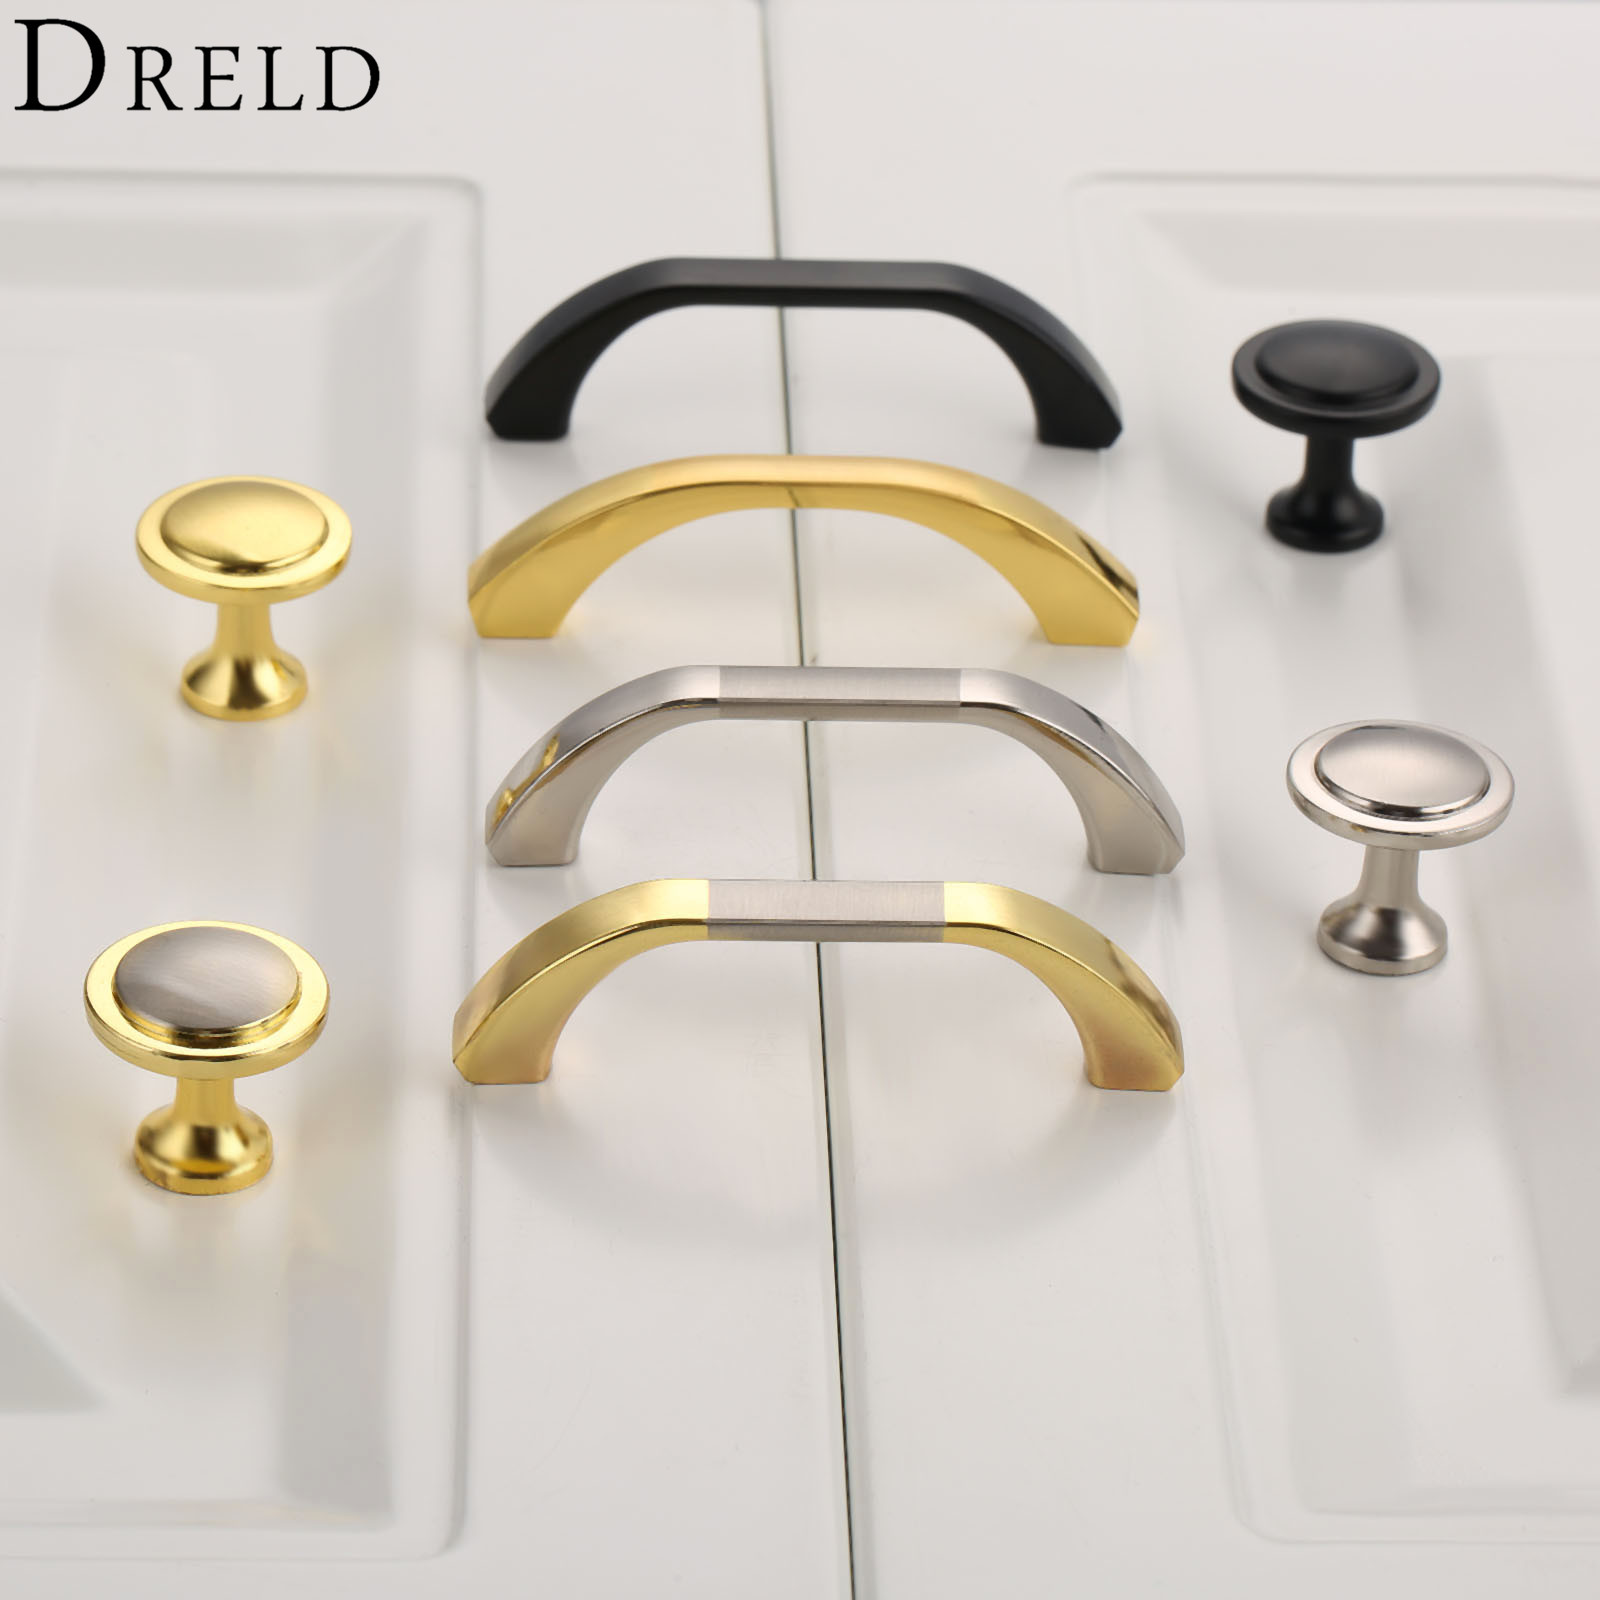 DRELD Furniture Handle Cabinet Knobs and Handles Kitchen Wardrobe Door Pull Handle Furniture Hardware tiradores para cajones high grade crystal handles wardrobe door cabinet knobs furniture closet drawer hardware small modern kitchen pull and handle